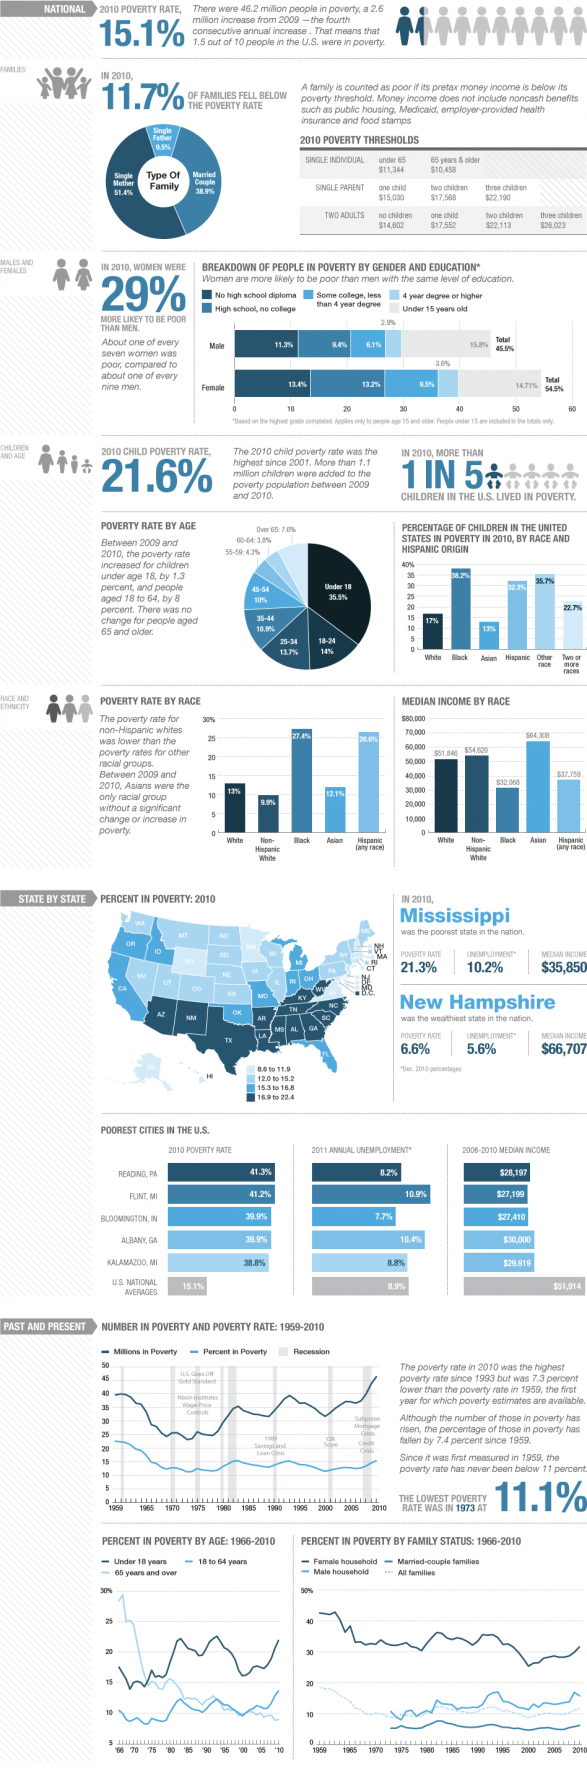 Poverty In The U.S. By The Numbers